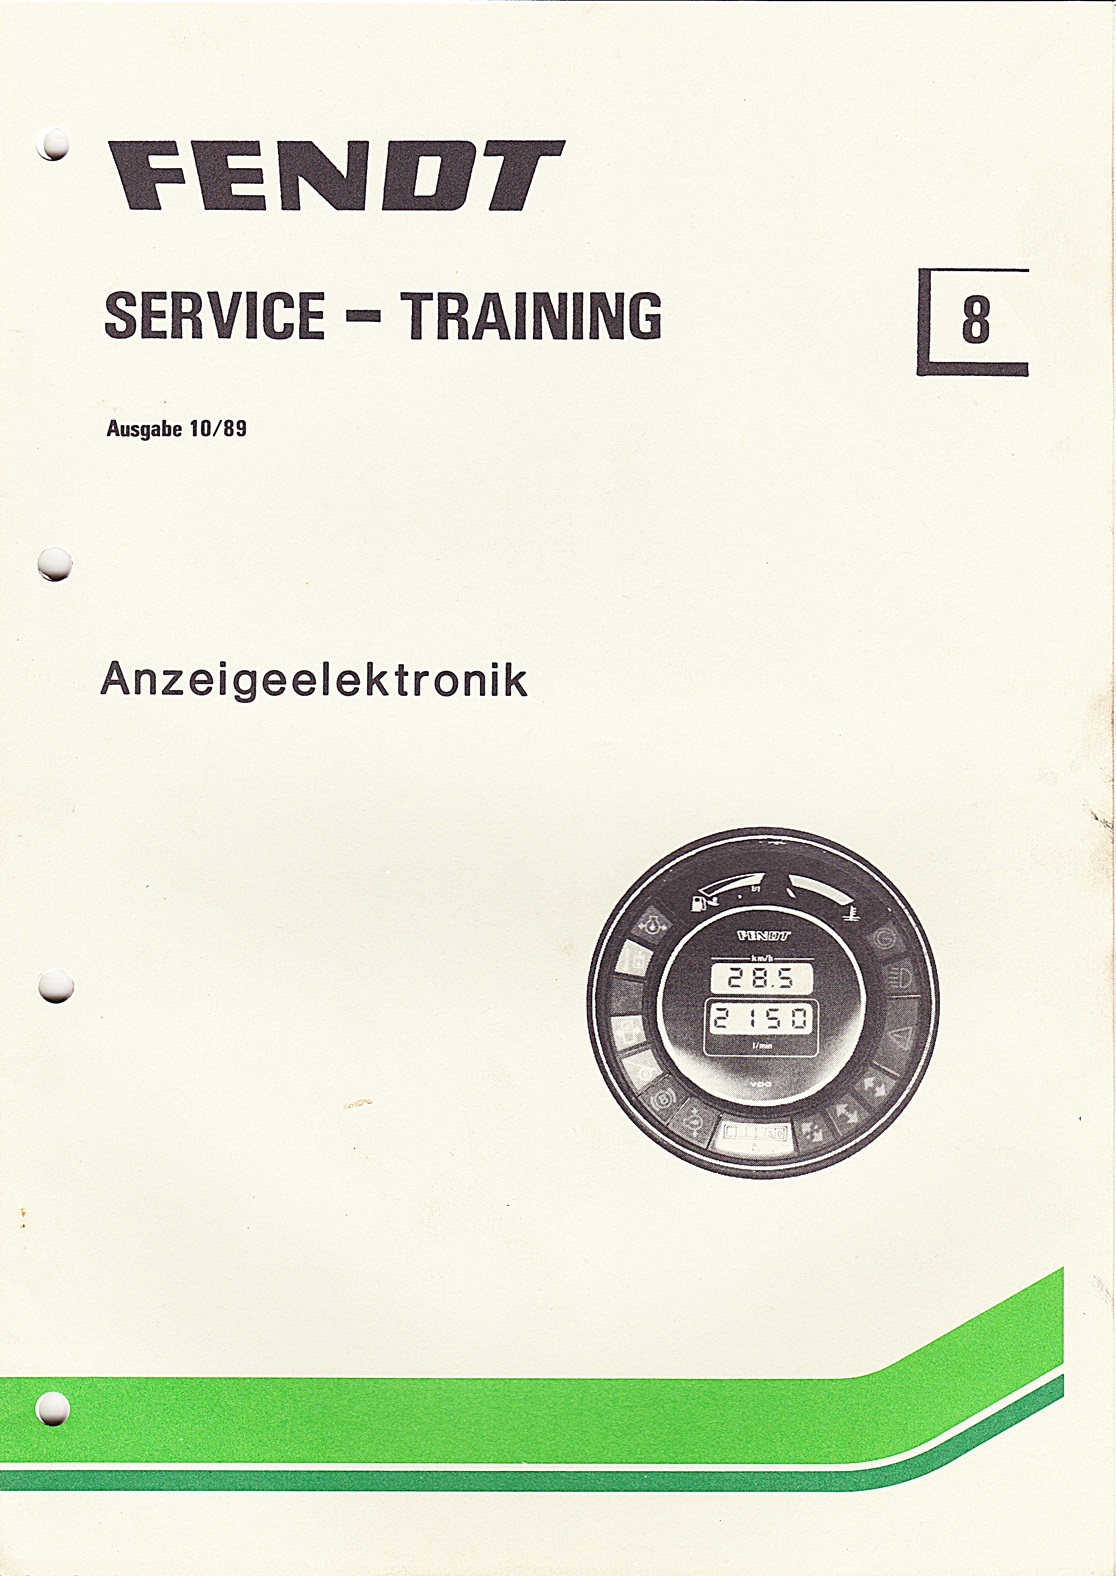 Fendt Service - Training Nr.8  Anzeigeelektronik